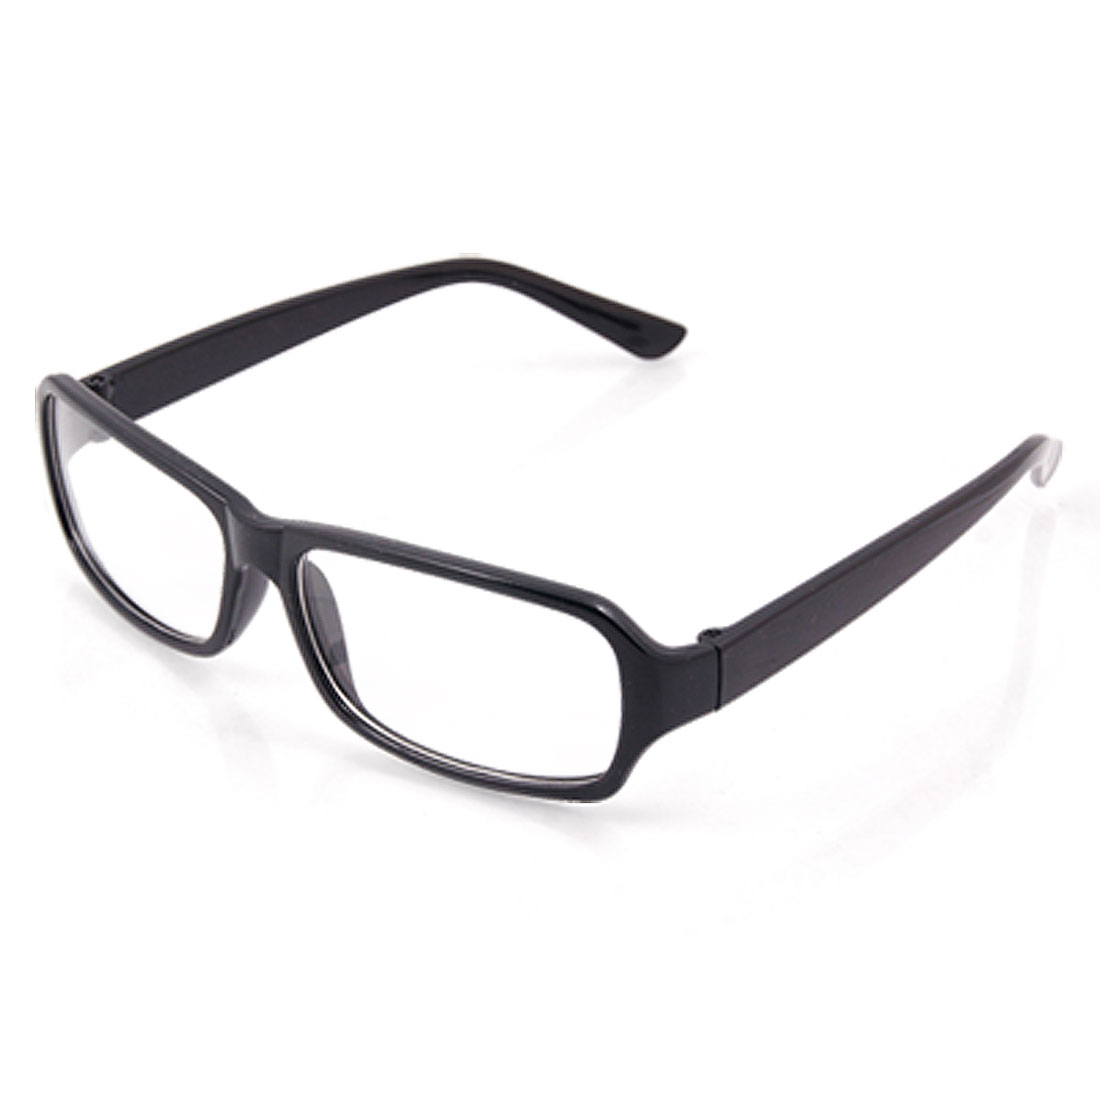 Black Polished Plastic Arms Rectangle Clear Lens Glasses